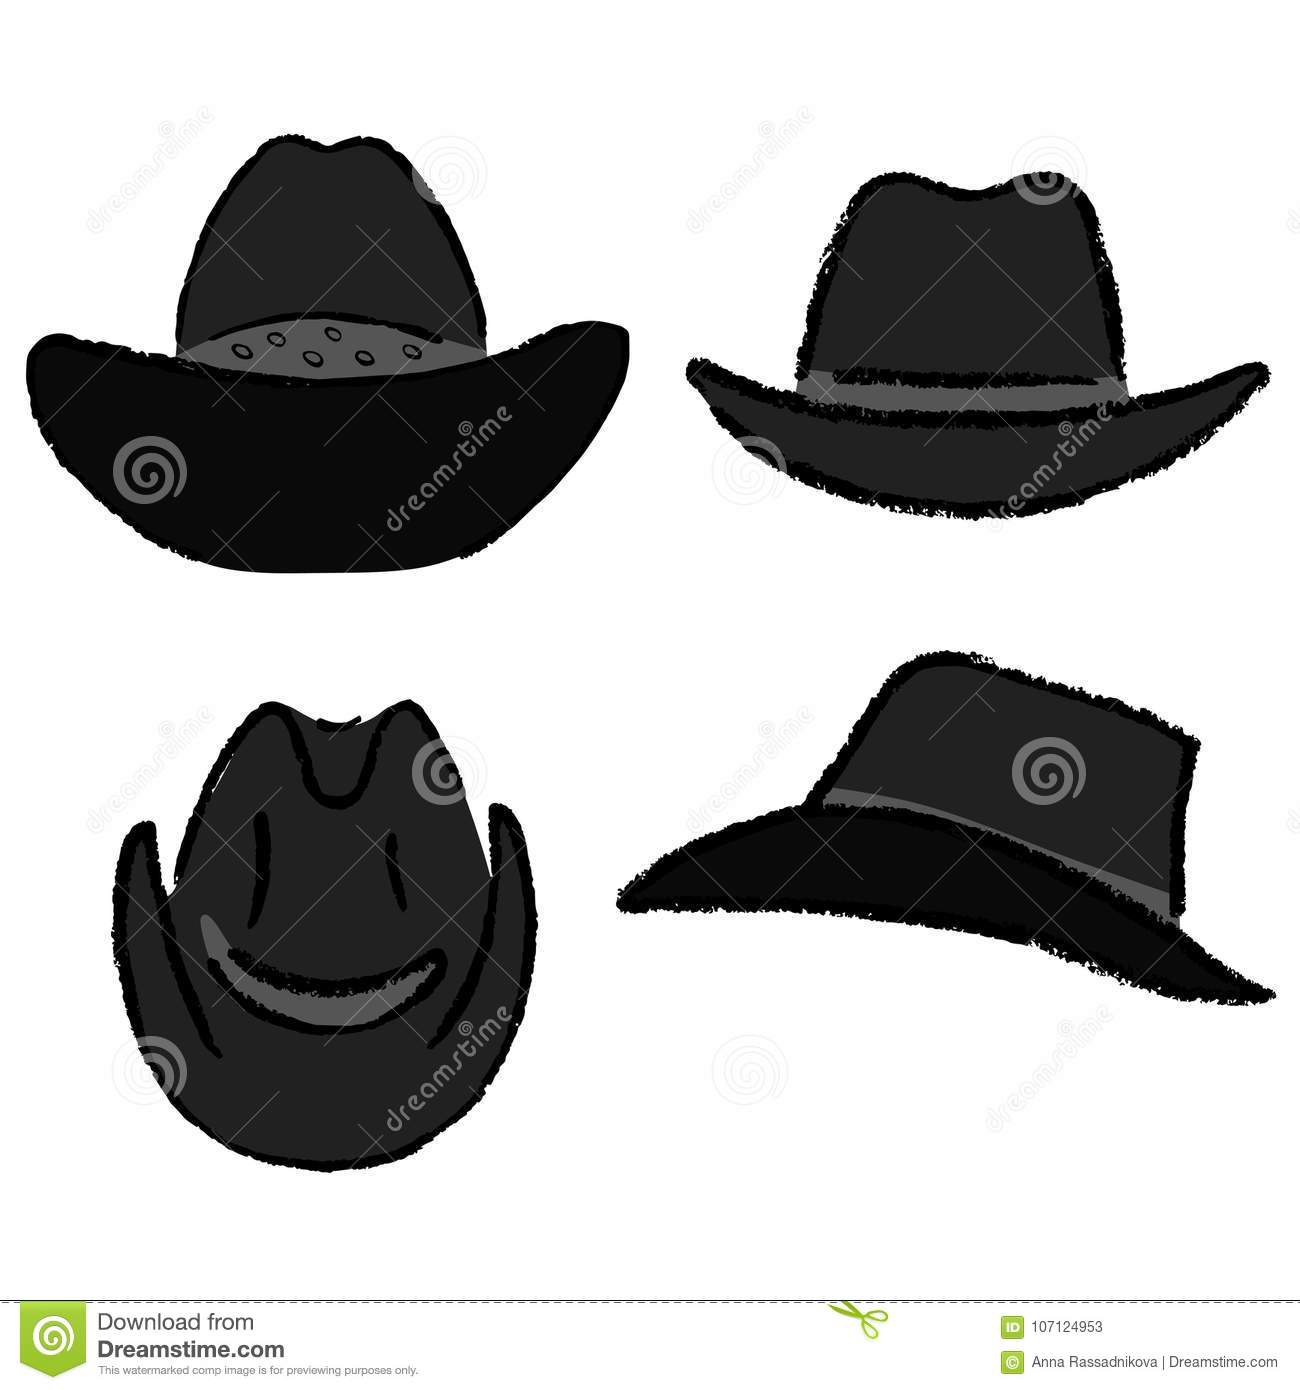 Cowboy hat template stock vector. Illustration of pattern - 107124953